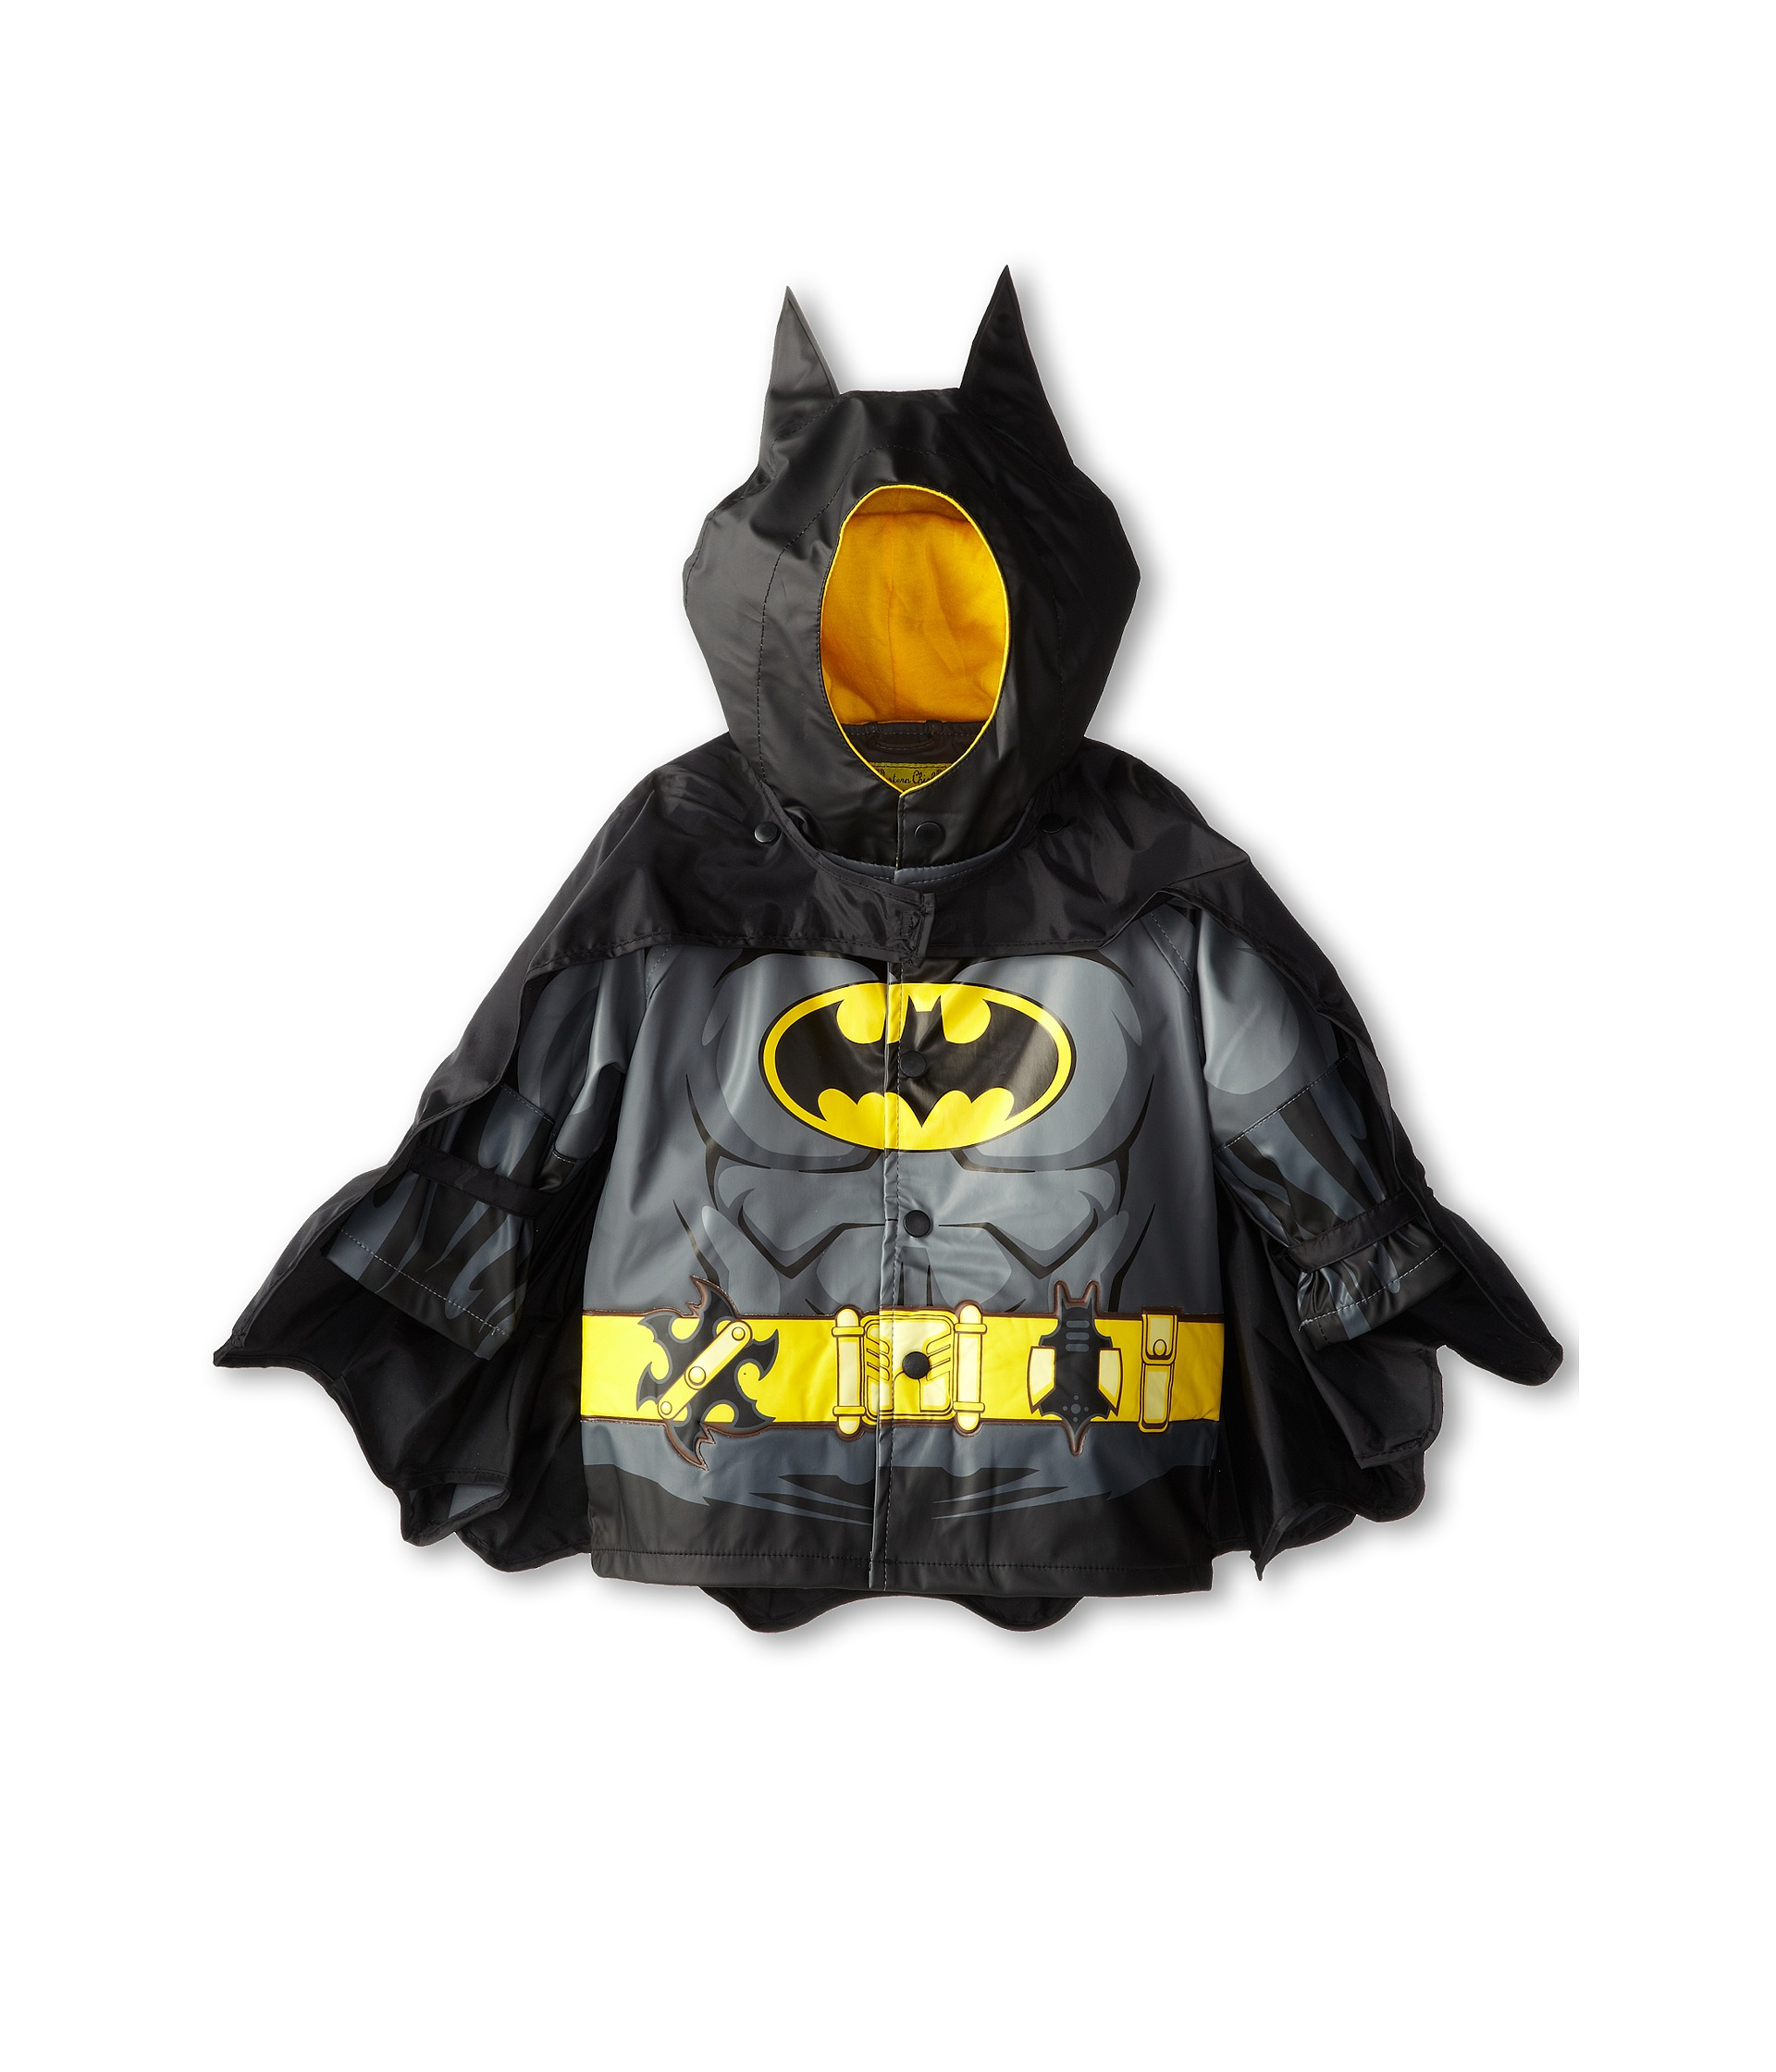 You searched for: batman shoes! Etsy is the home to thousands of handmade, vintage, and one-of-a-kind products and gifts related to your search. No matter what you're looking for or where you are in the world, our global marketplace of sellers can help you find unique and affordable options. Let's get started!